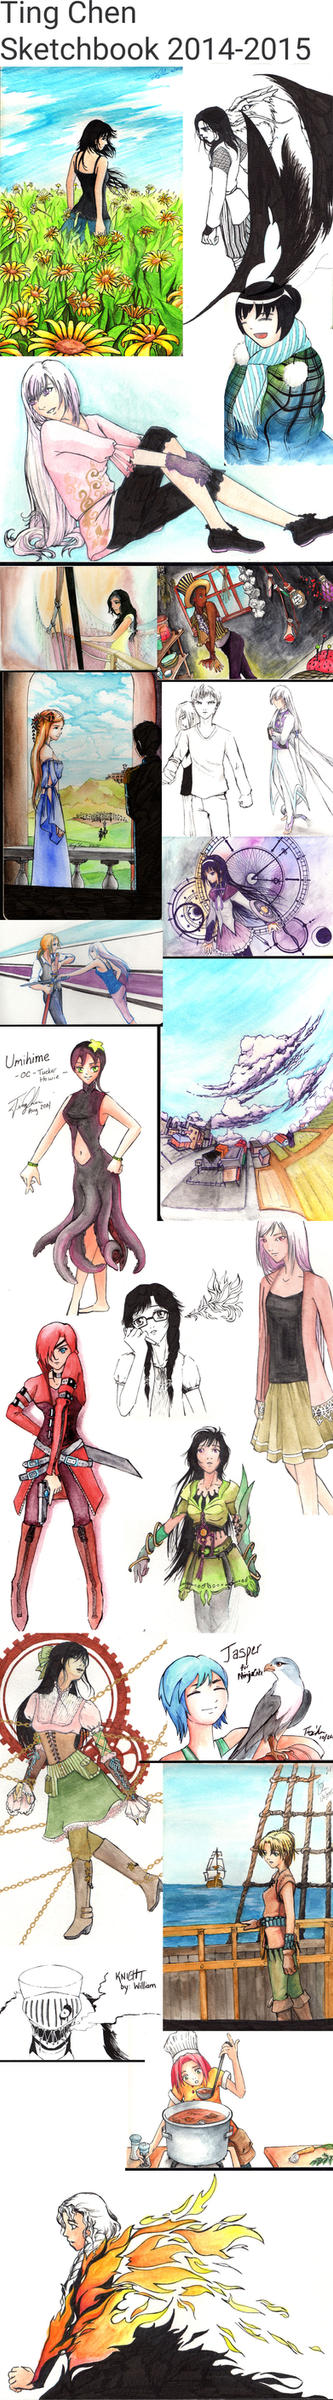 Sketchdump 2014-2015 by tingc888